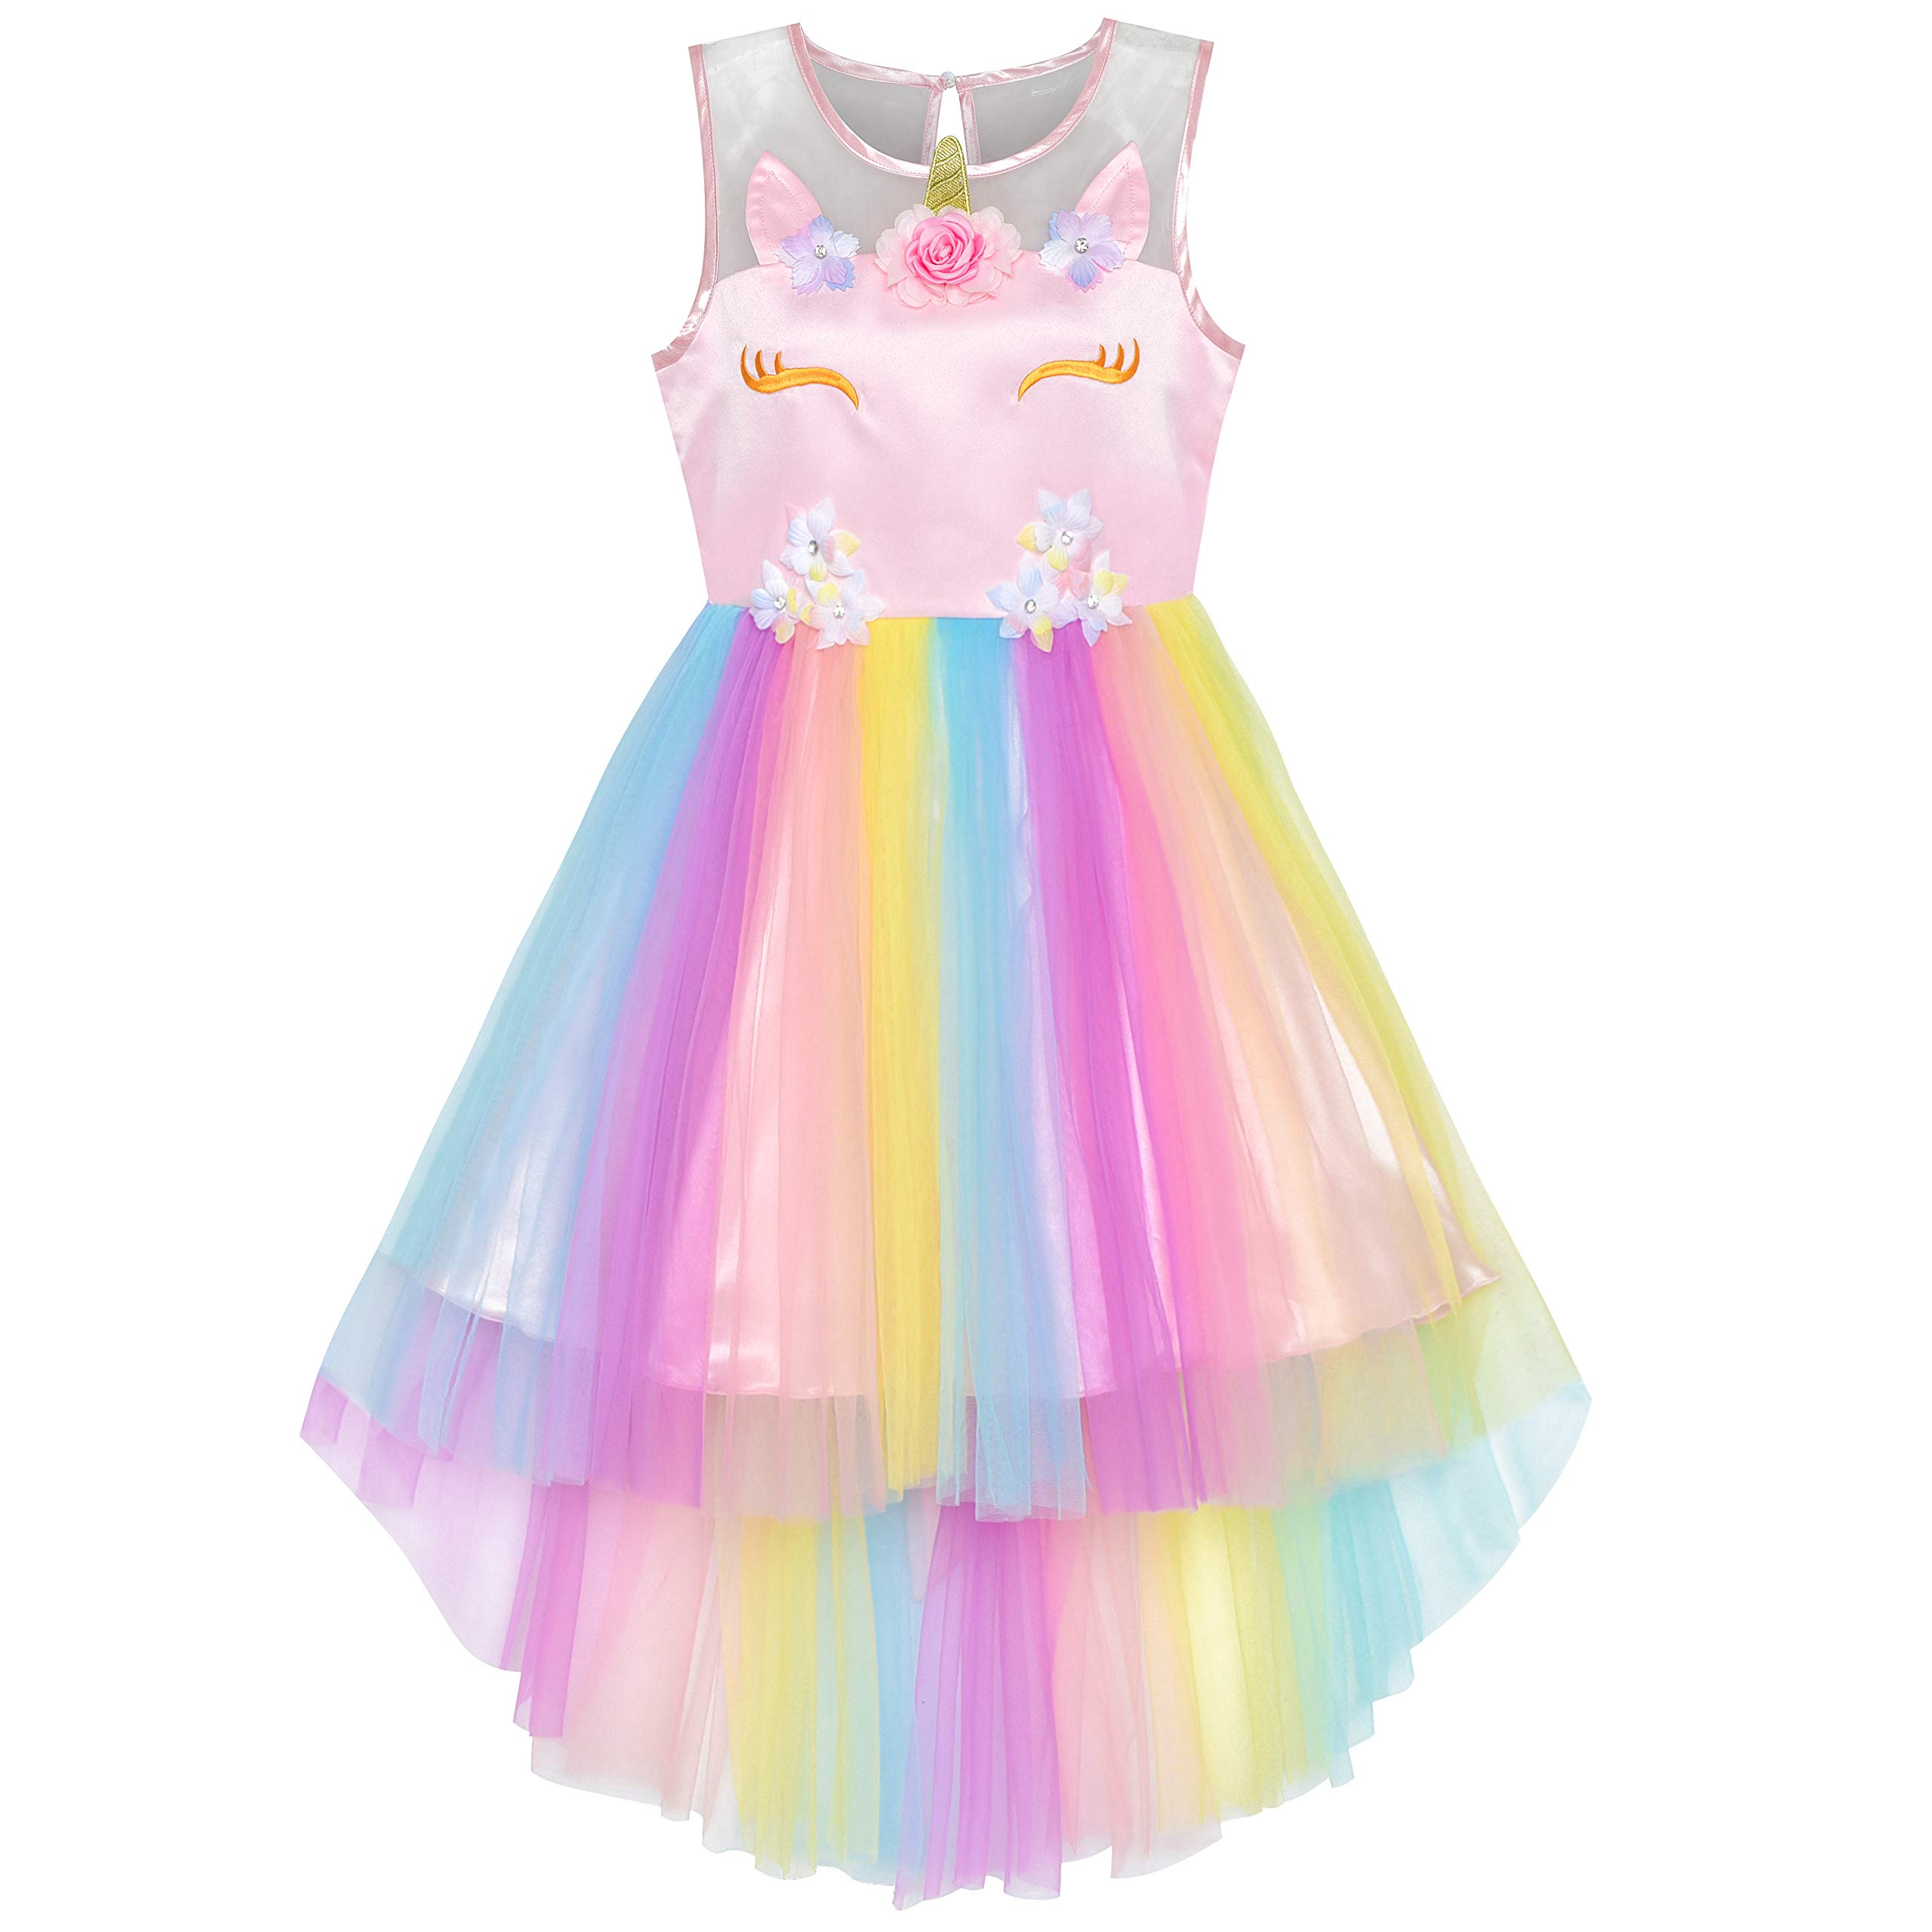 Wedding Party Dress Superior Materials Reliable Flower Girl Dresses Princess Prints A Christmas Holiday Performance Dress Girl Christmas Party Banquet Dress Flower Girl Dresses